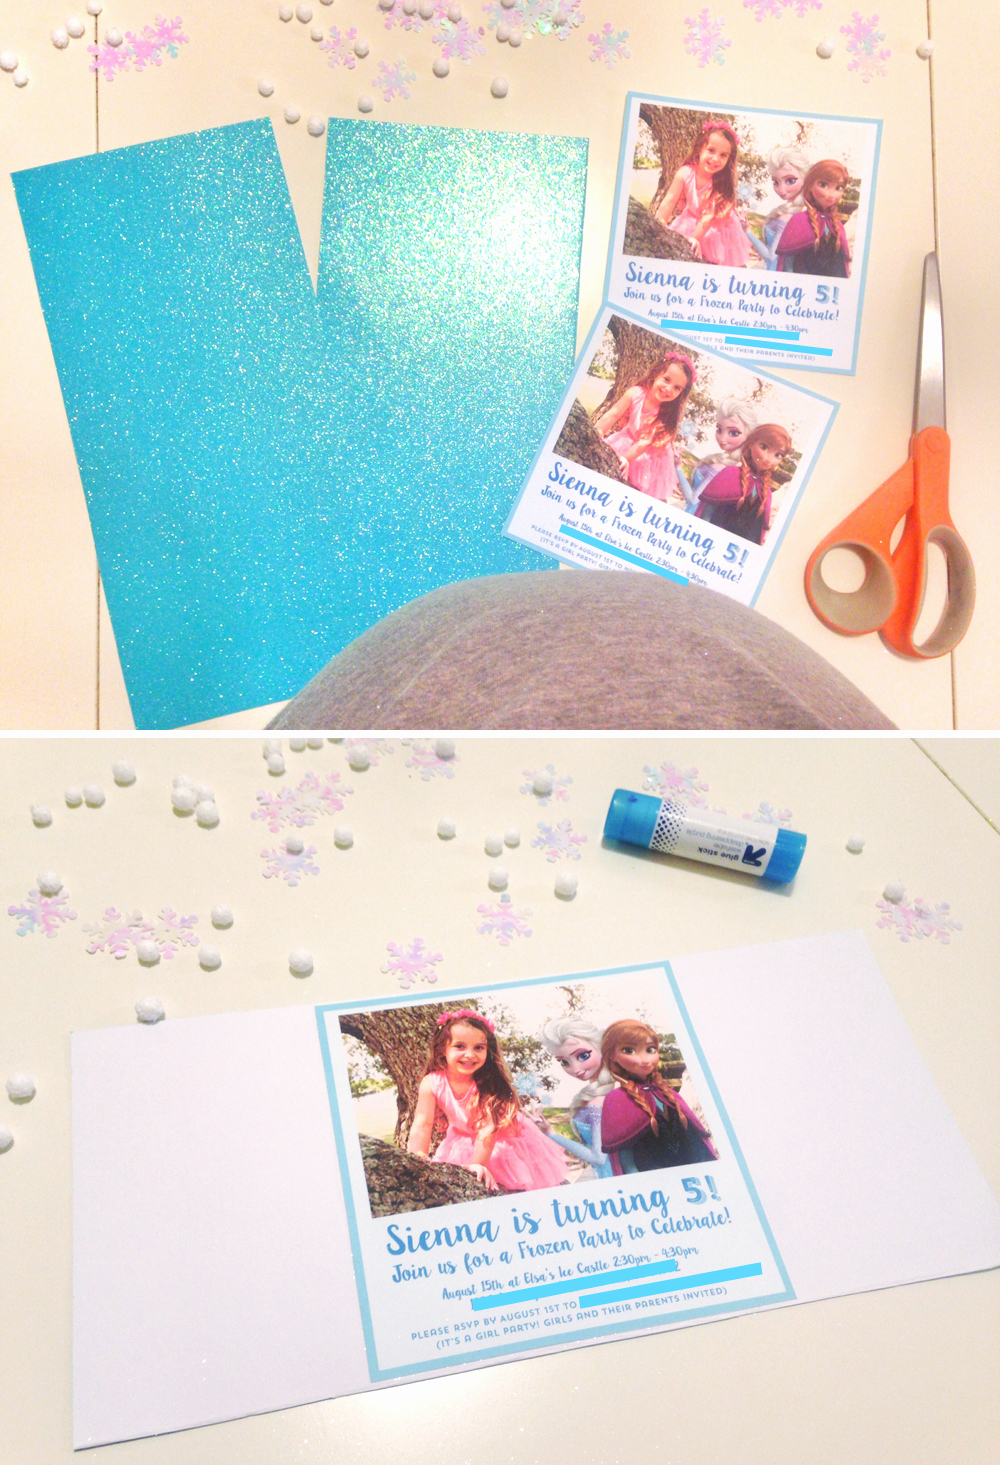 Diy Birthday Invitation Ideas Luxury Diy Frozen Party Invitation Tutorial Free Printable – at